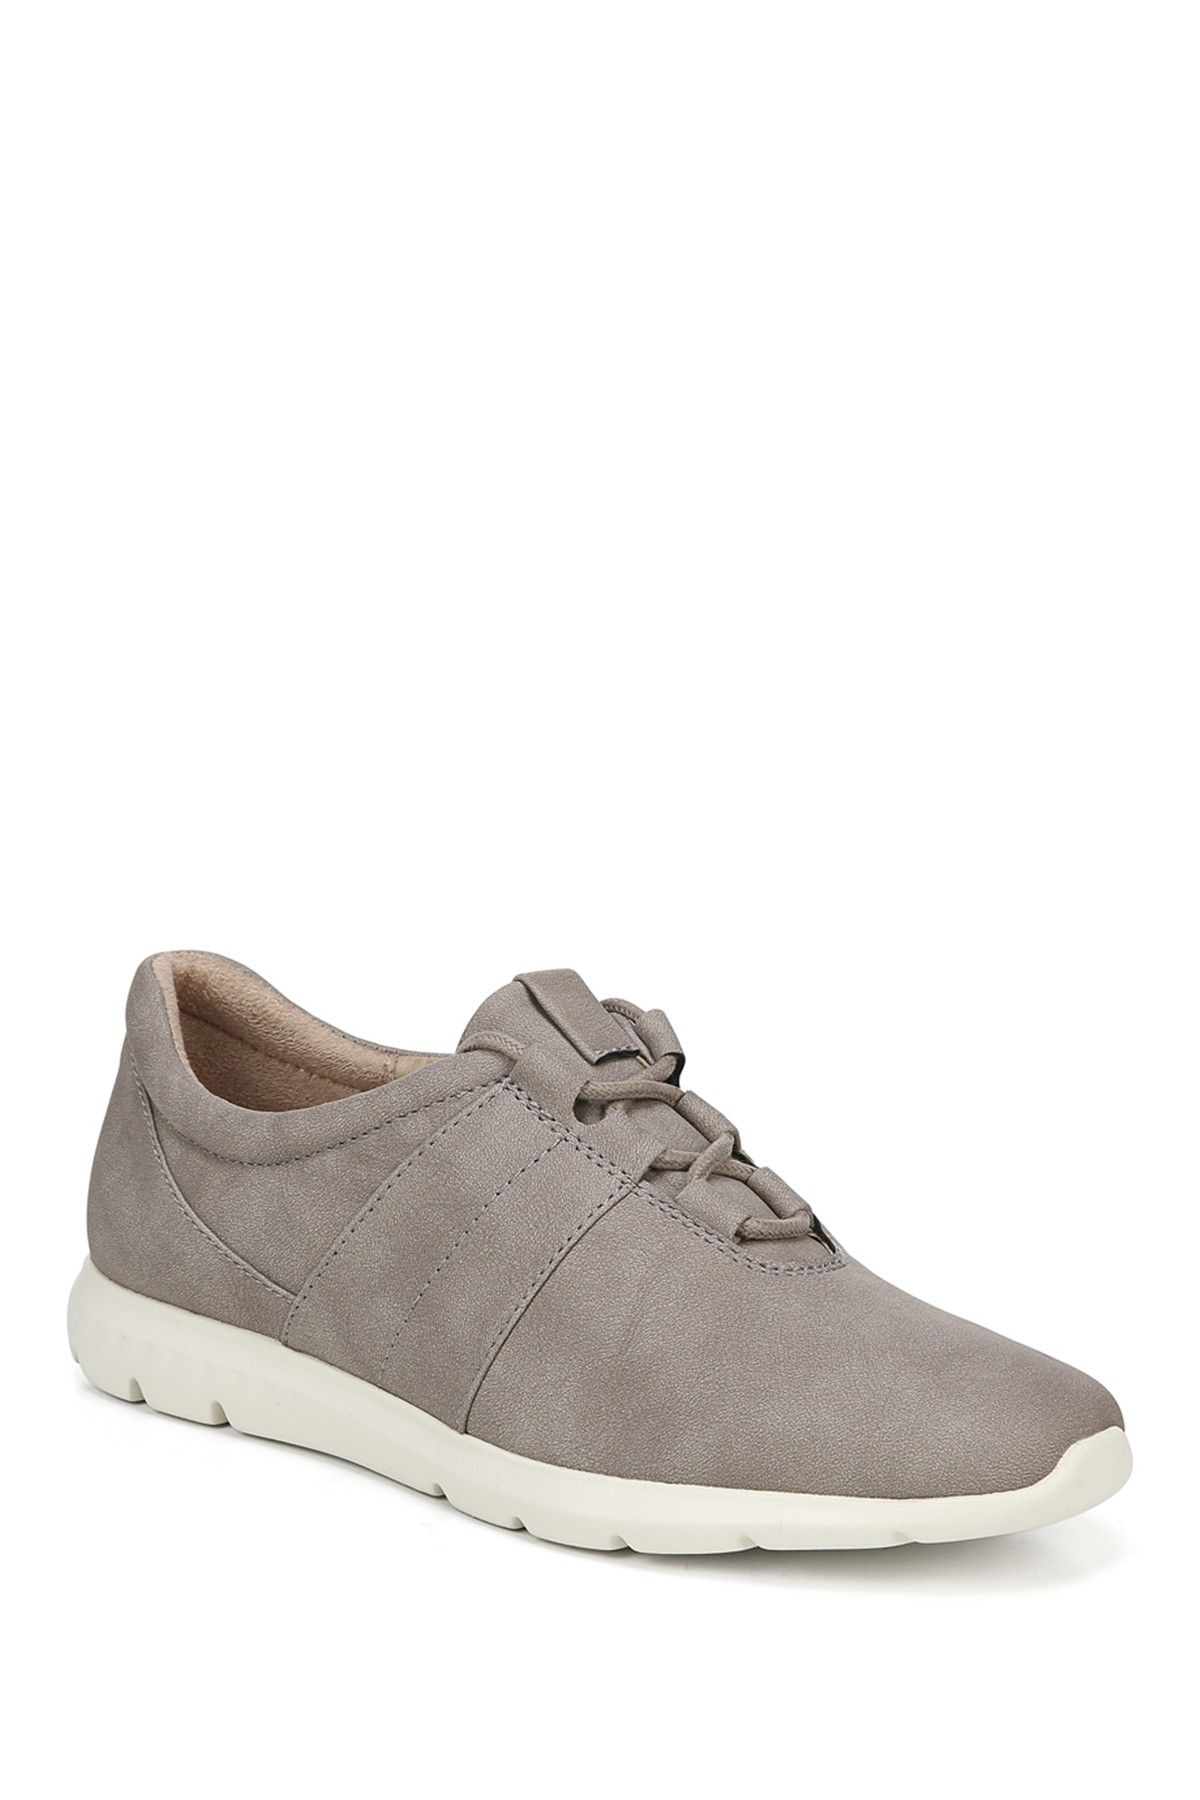 ab073b7142 SOUL Naturalizer | Peace Sneaker - Wide Width Available | Nordstrom Rack  was $39 in nordstrom rack